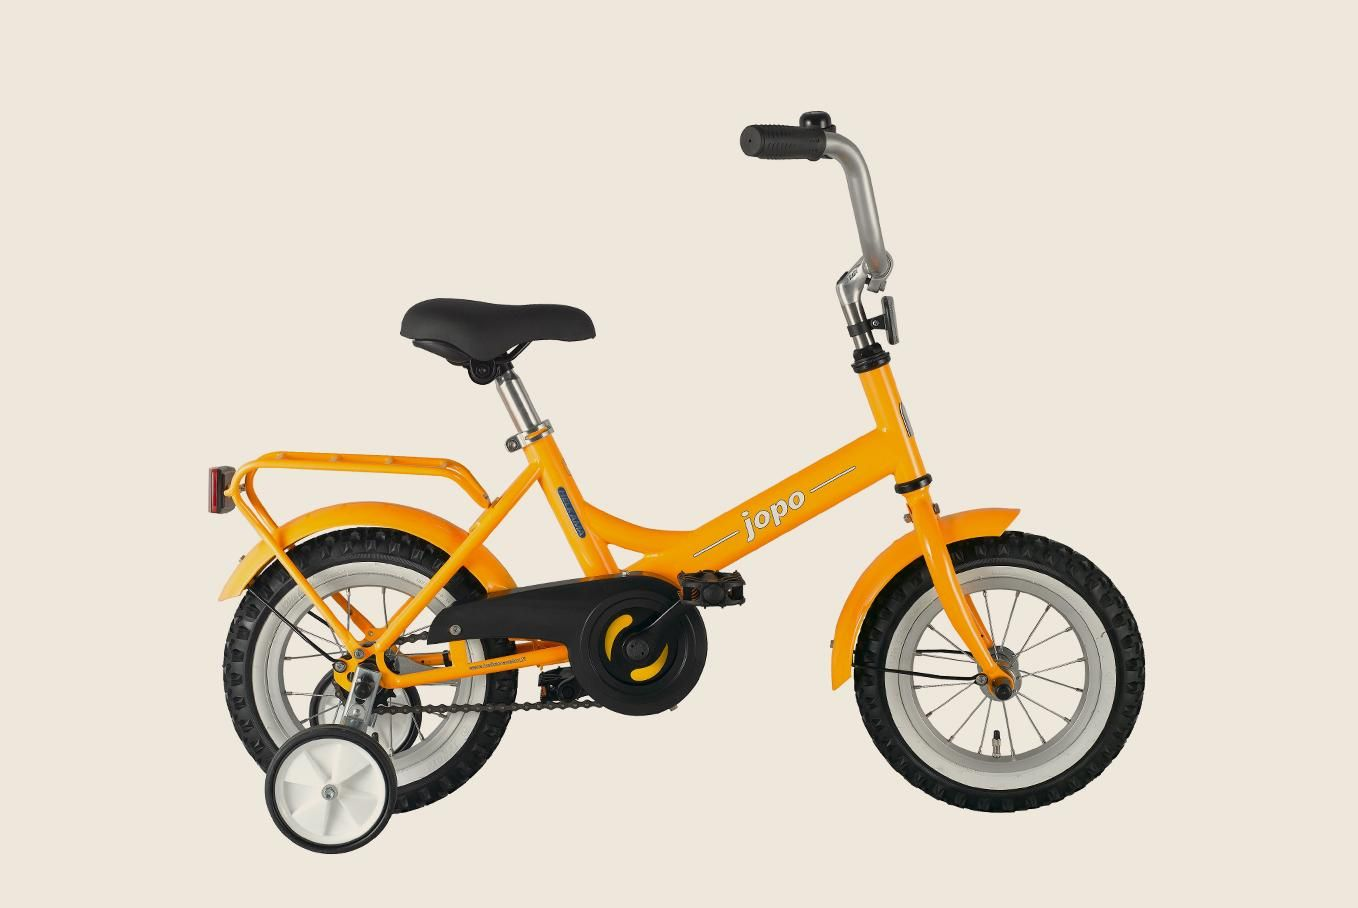 Helkama Jopo bike $385.00